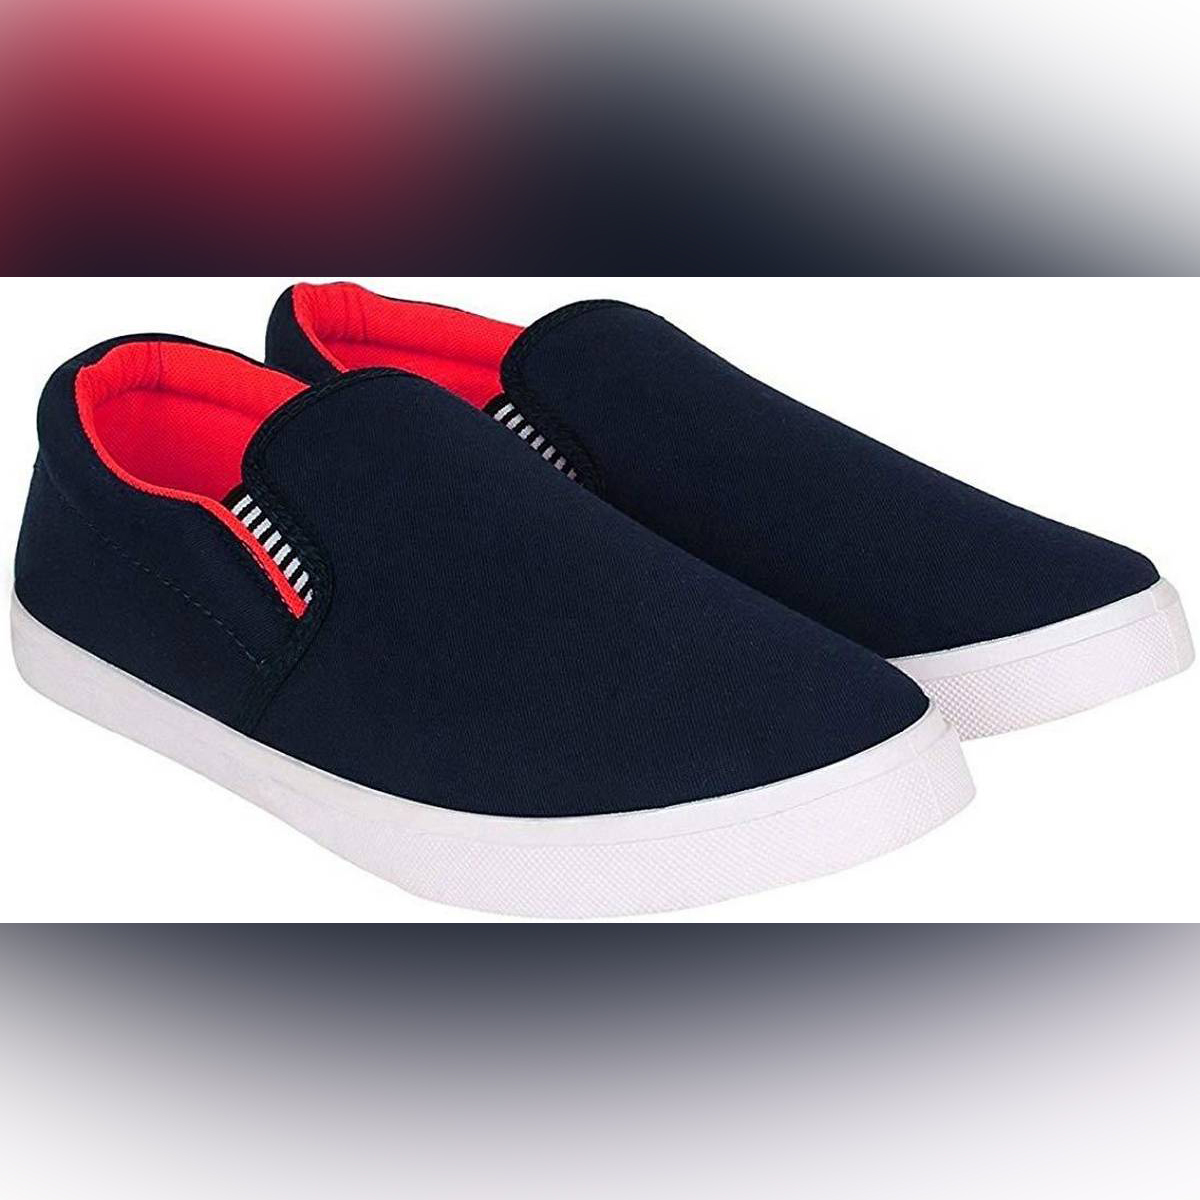 New Stylish Casual Jeans Shoes for Men Blue Color